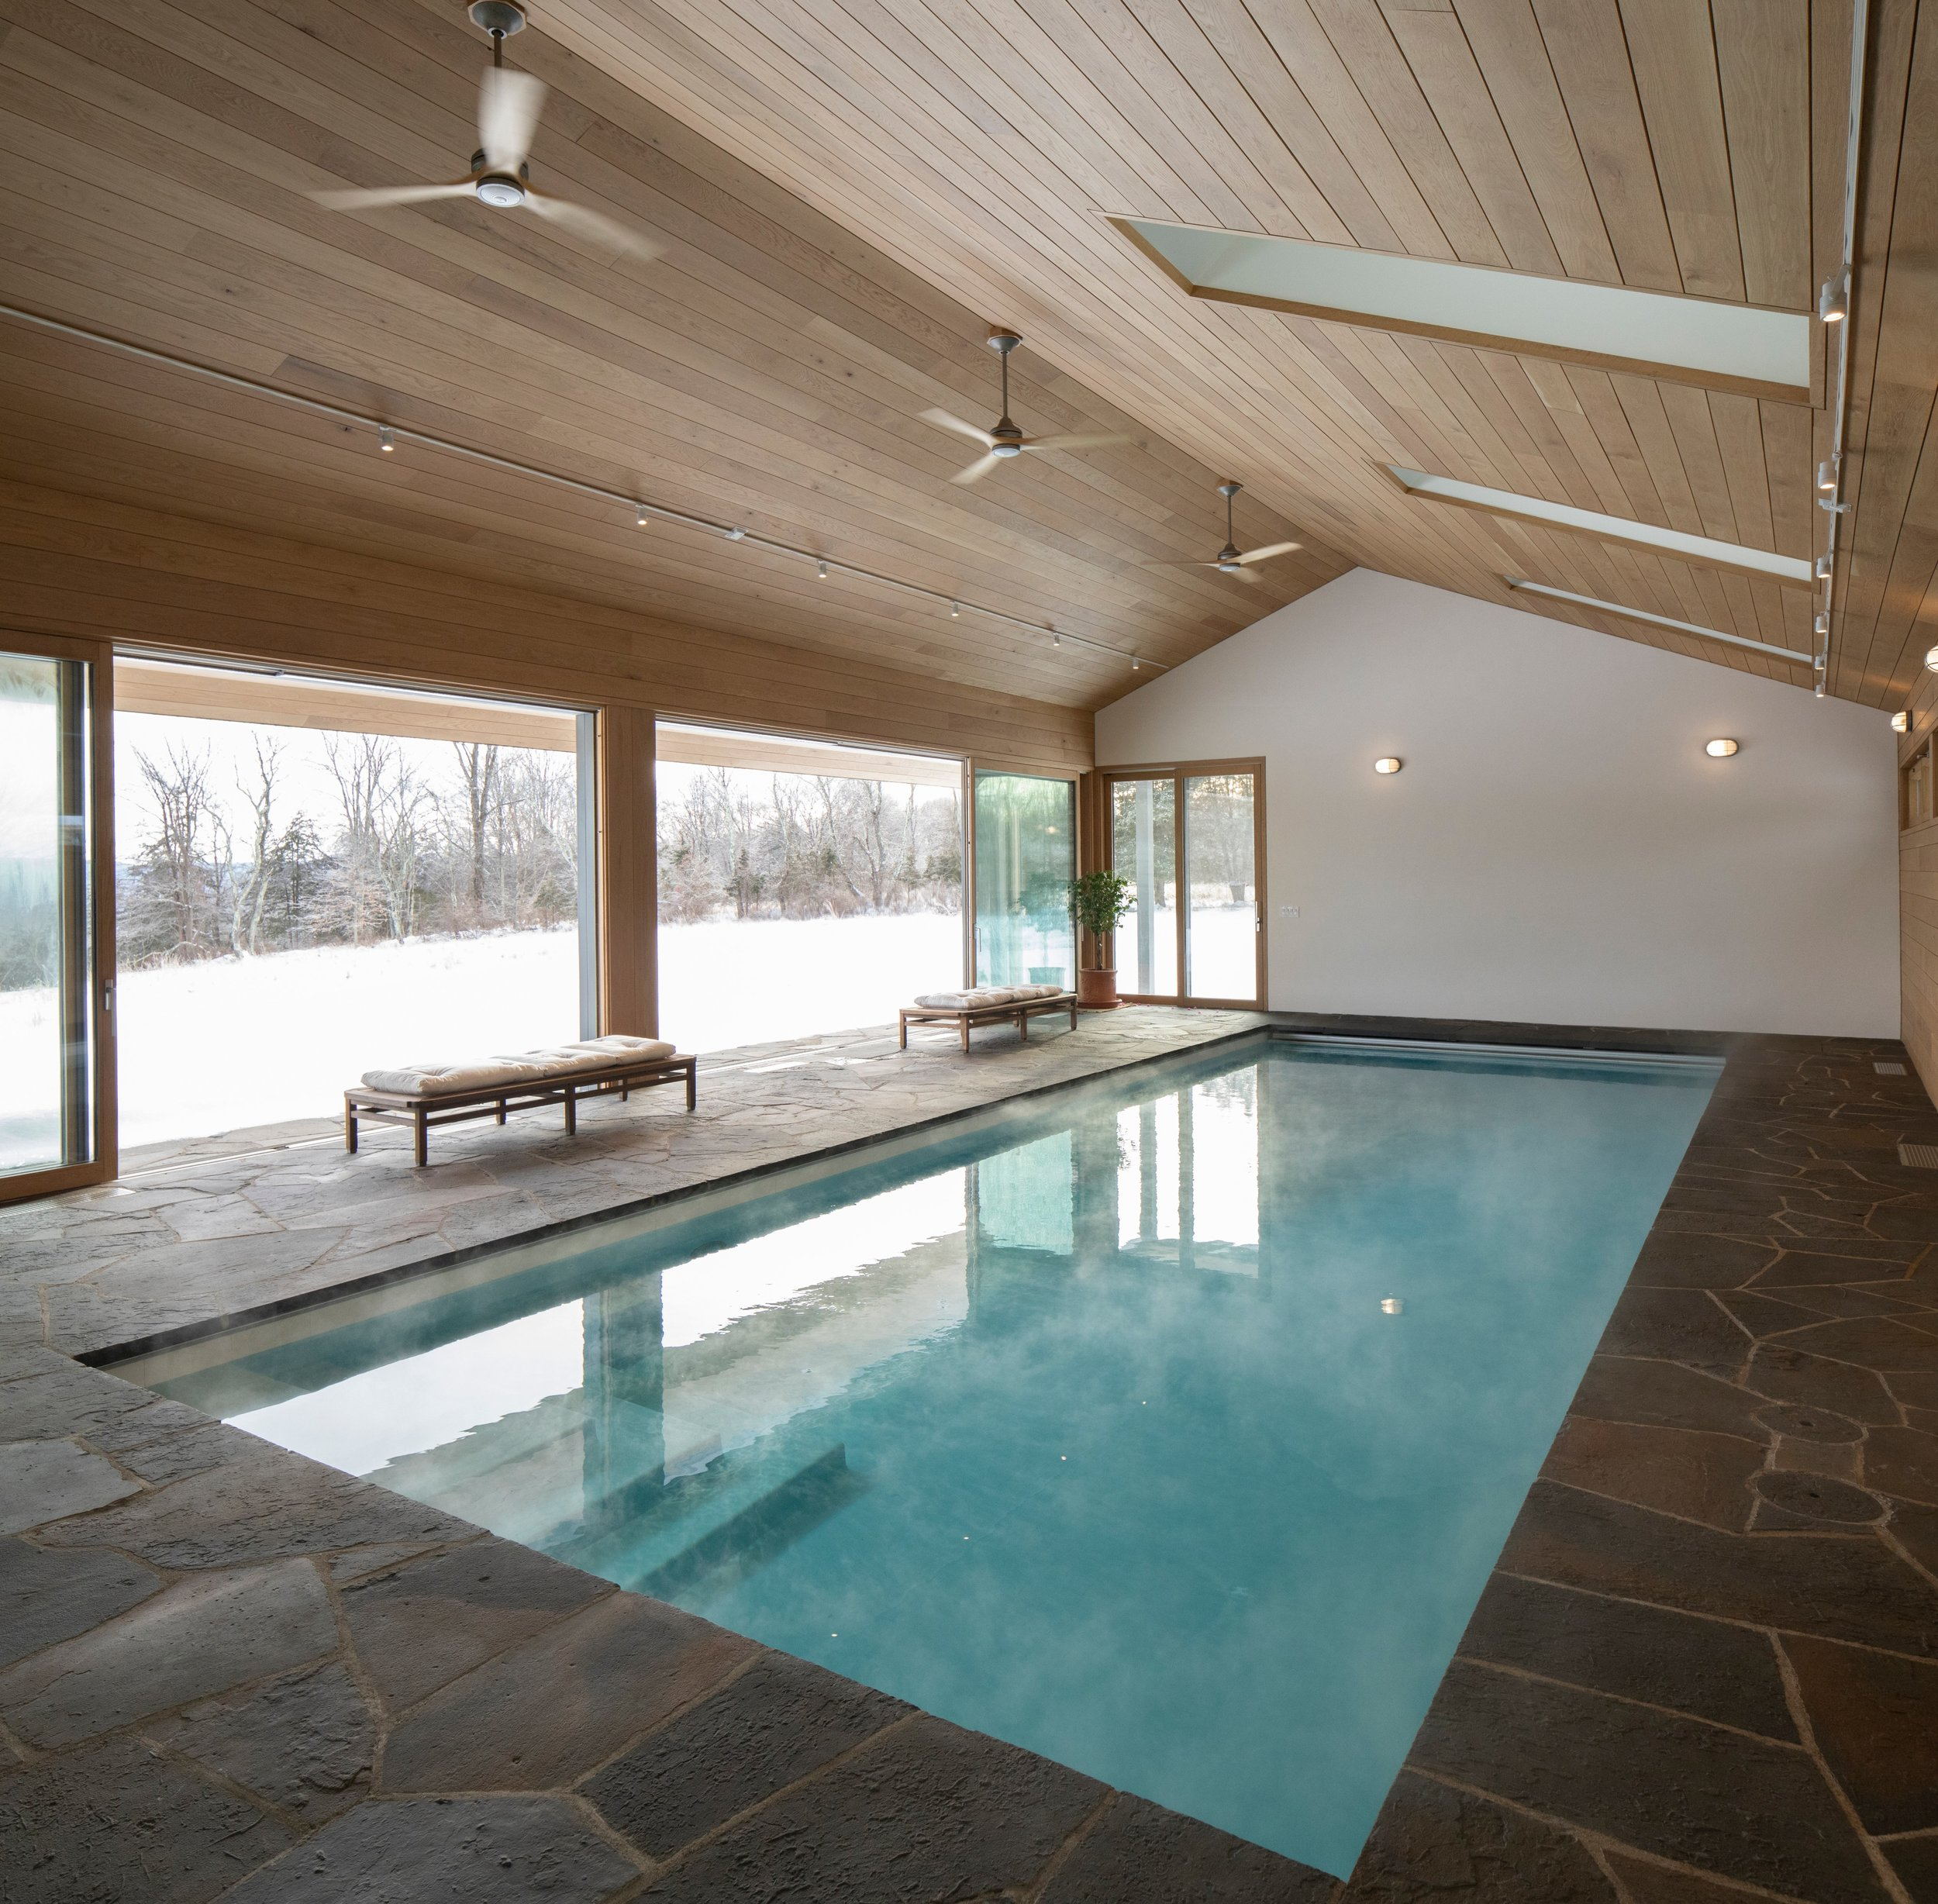 Pool Interior Angle Steam2.jpg